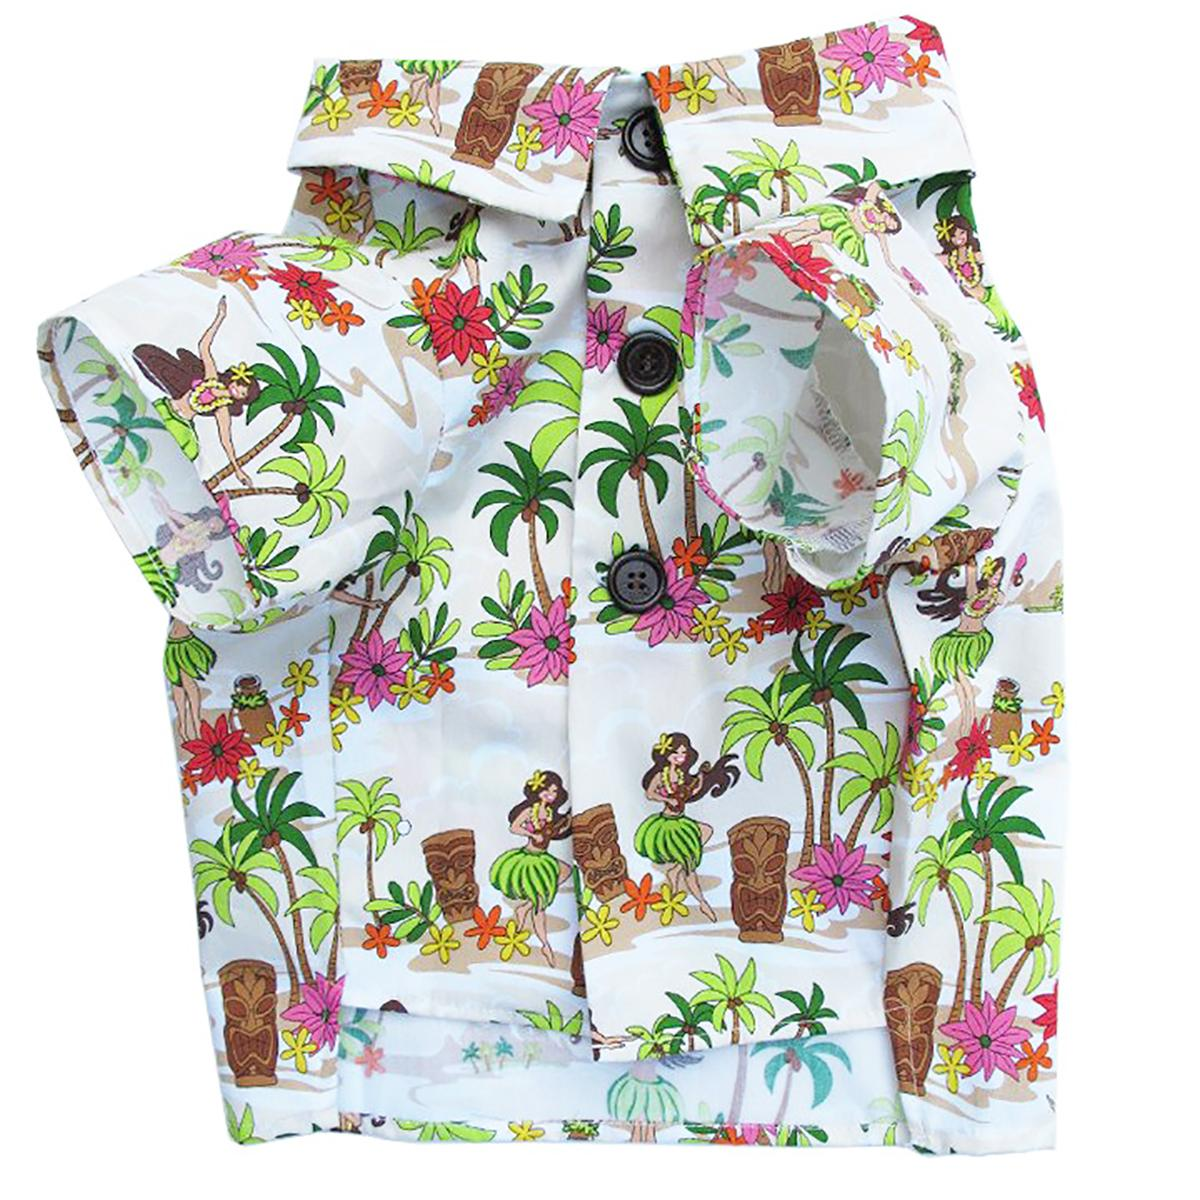 Hula Dancers BBQ Dog Shirt by Dog Threads